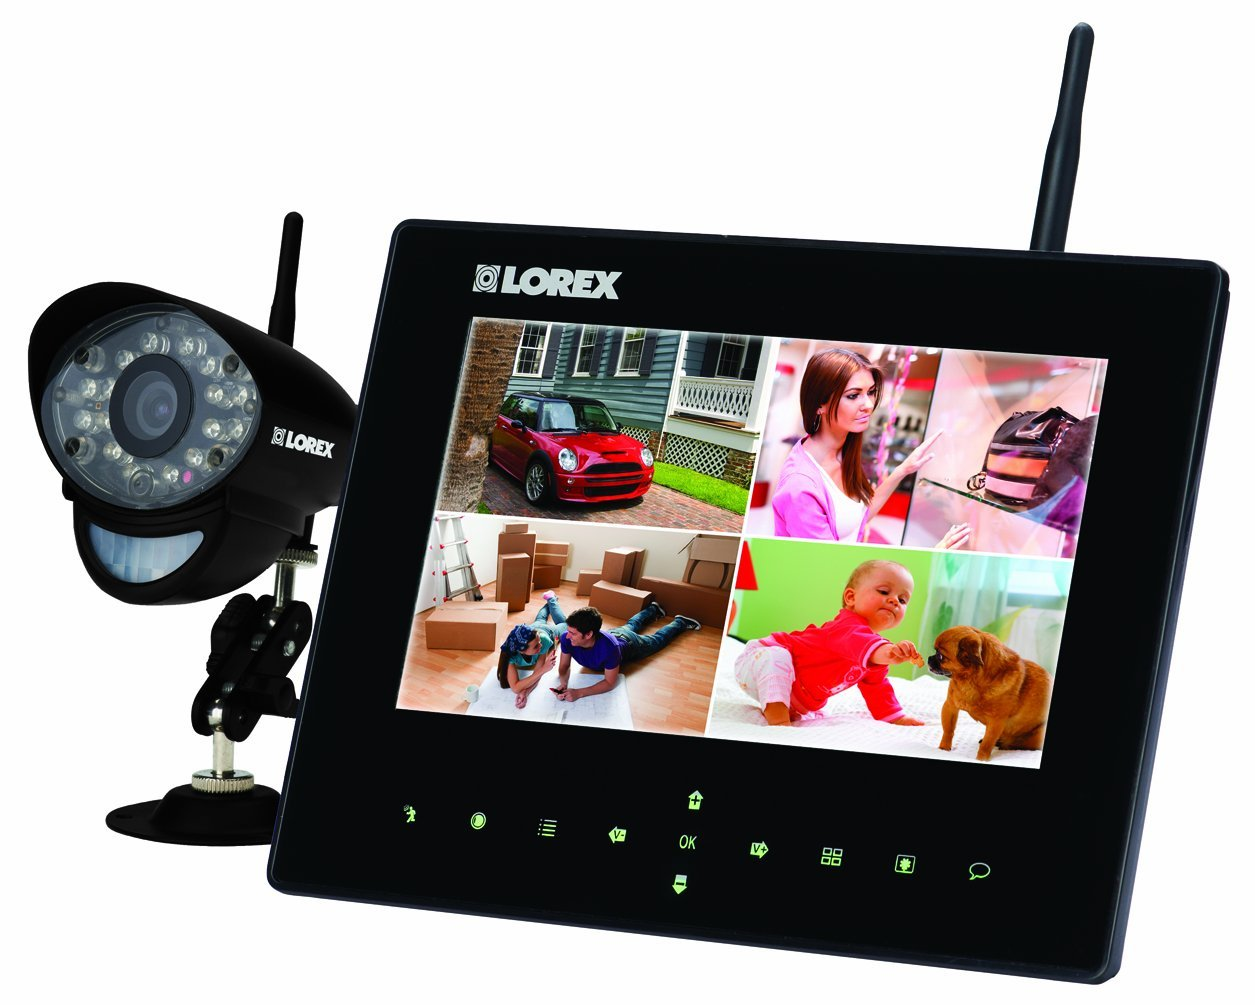 Lorex Wireless Video Surveillance System Series with 7-Inch LCD Monitor and 4 Camera